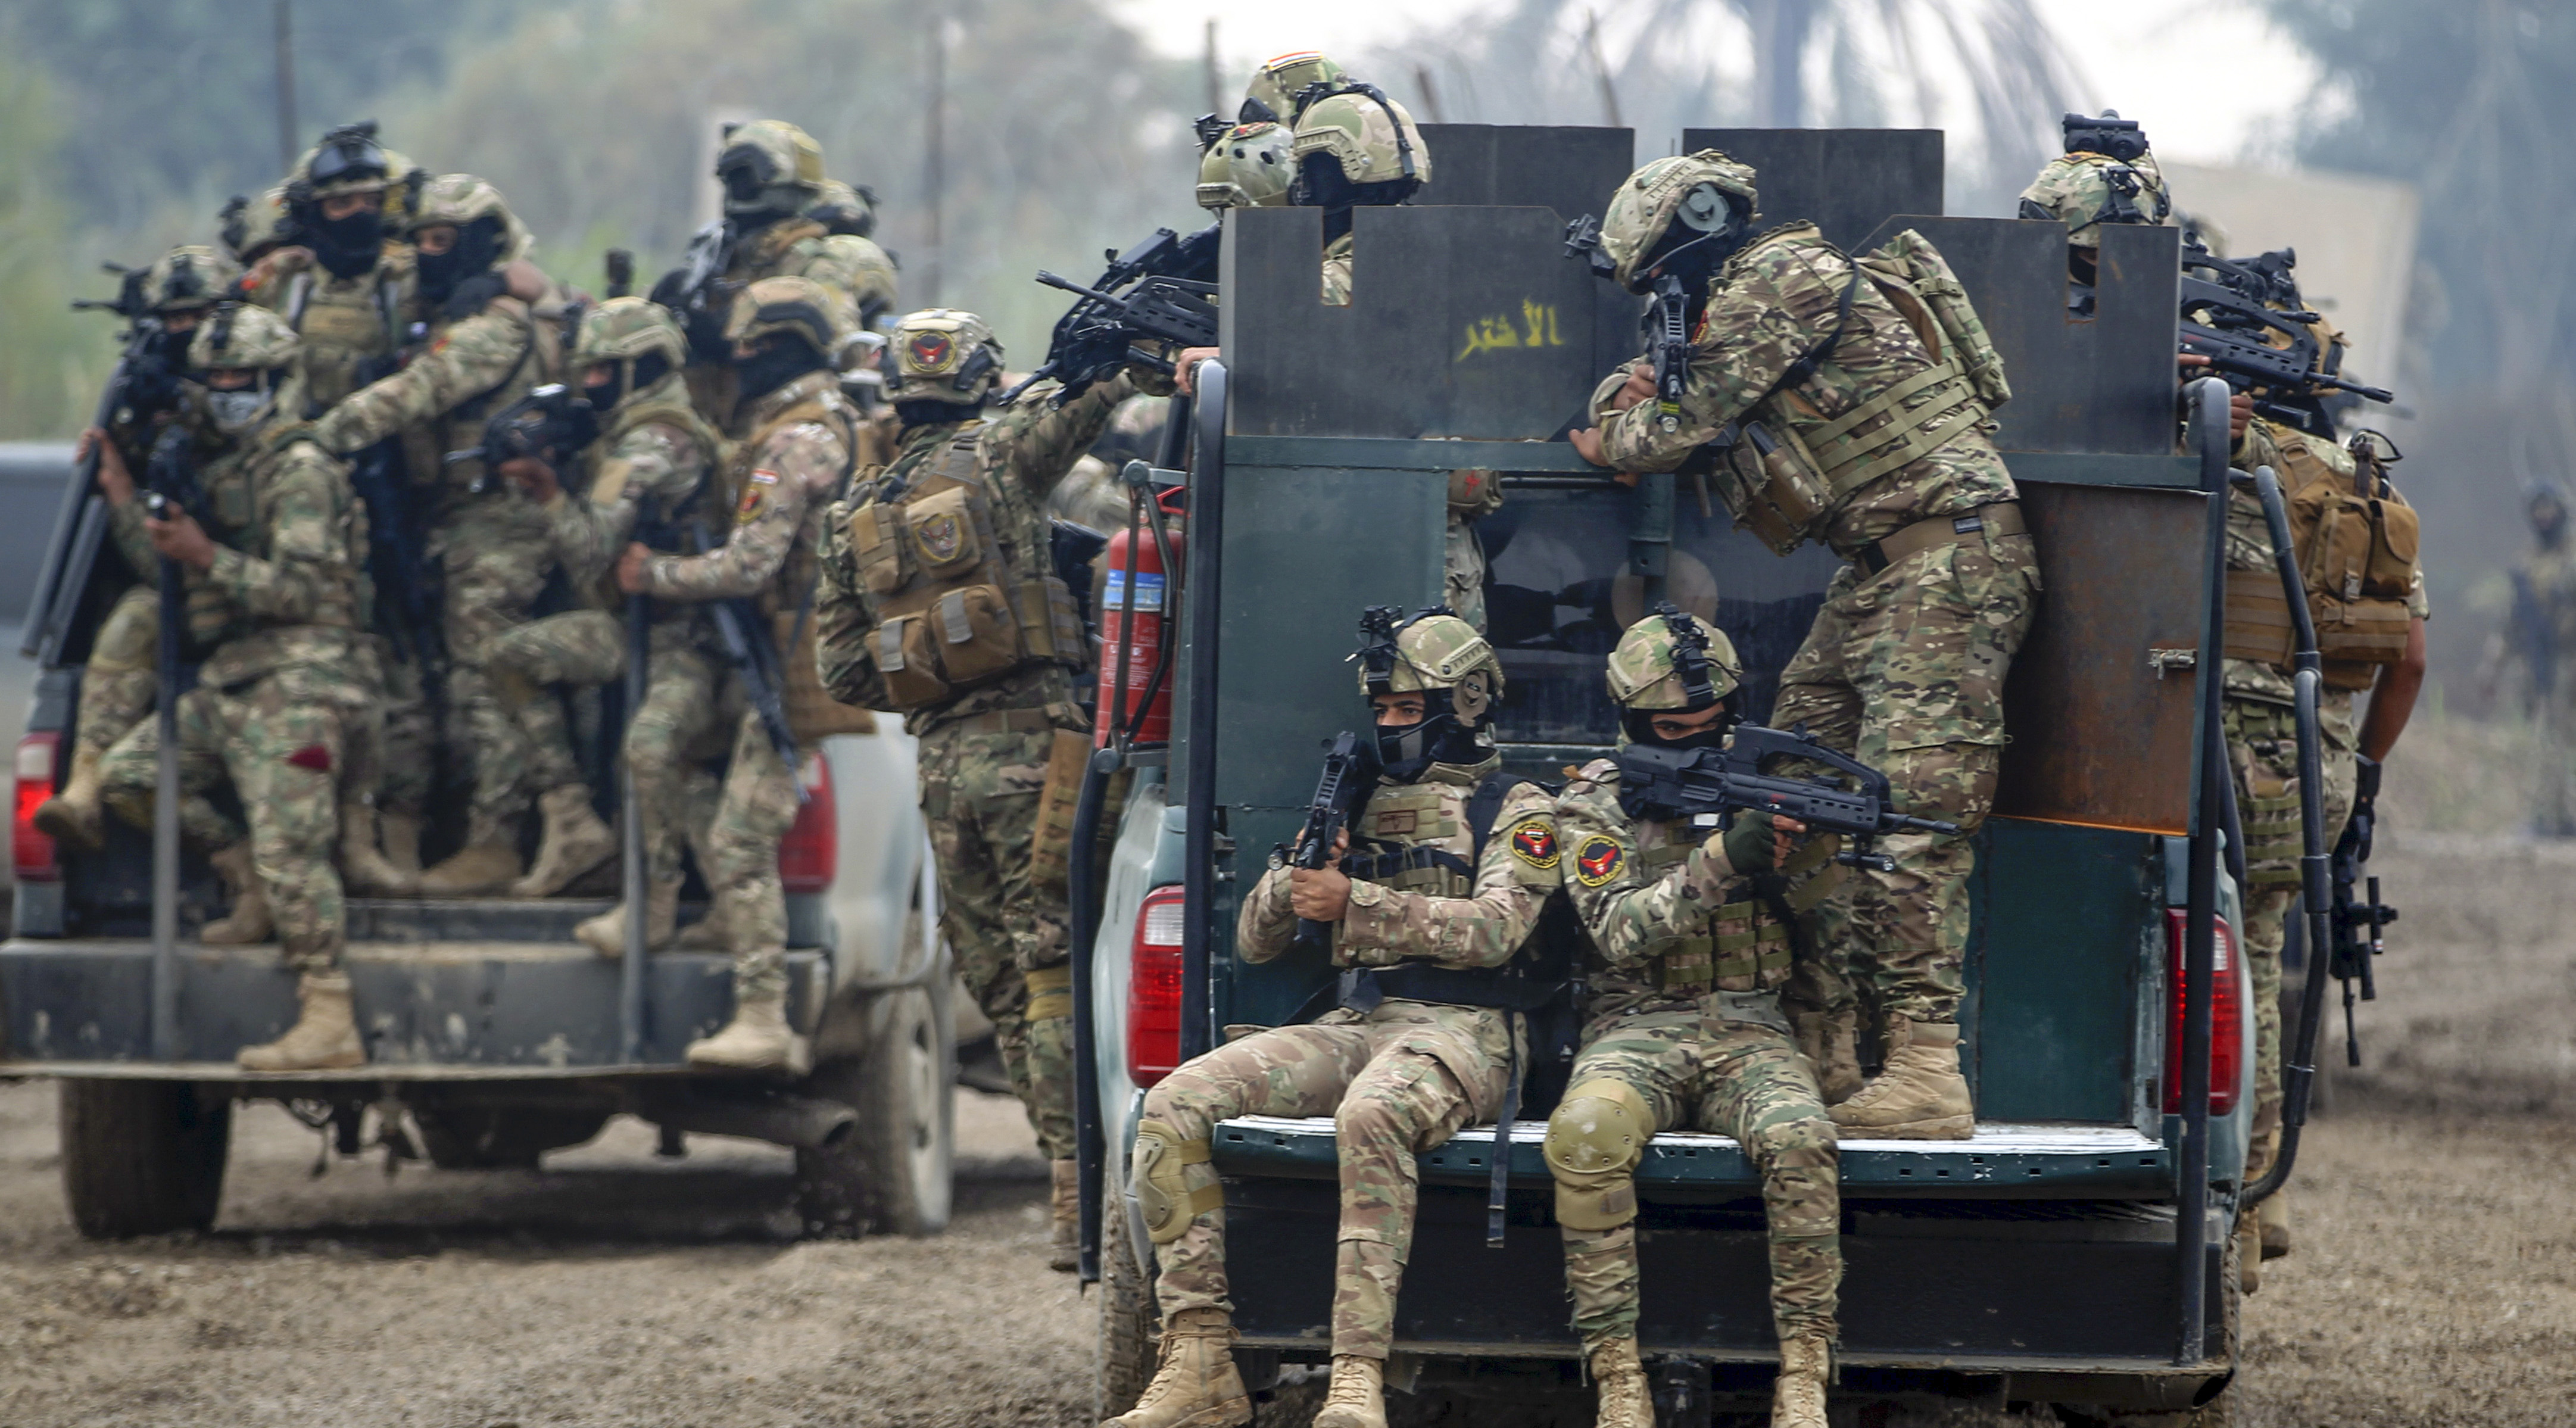 Members of Iraq's Rapid Response military unit take part in a